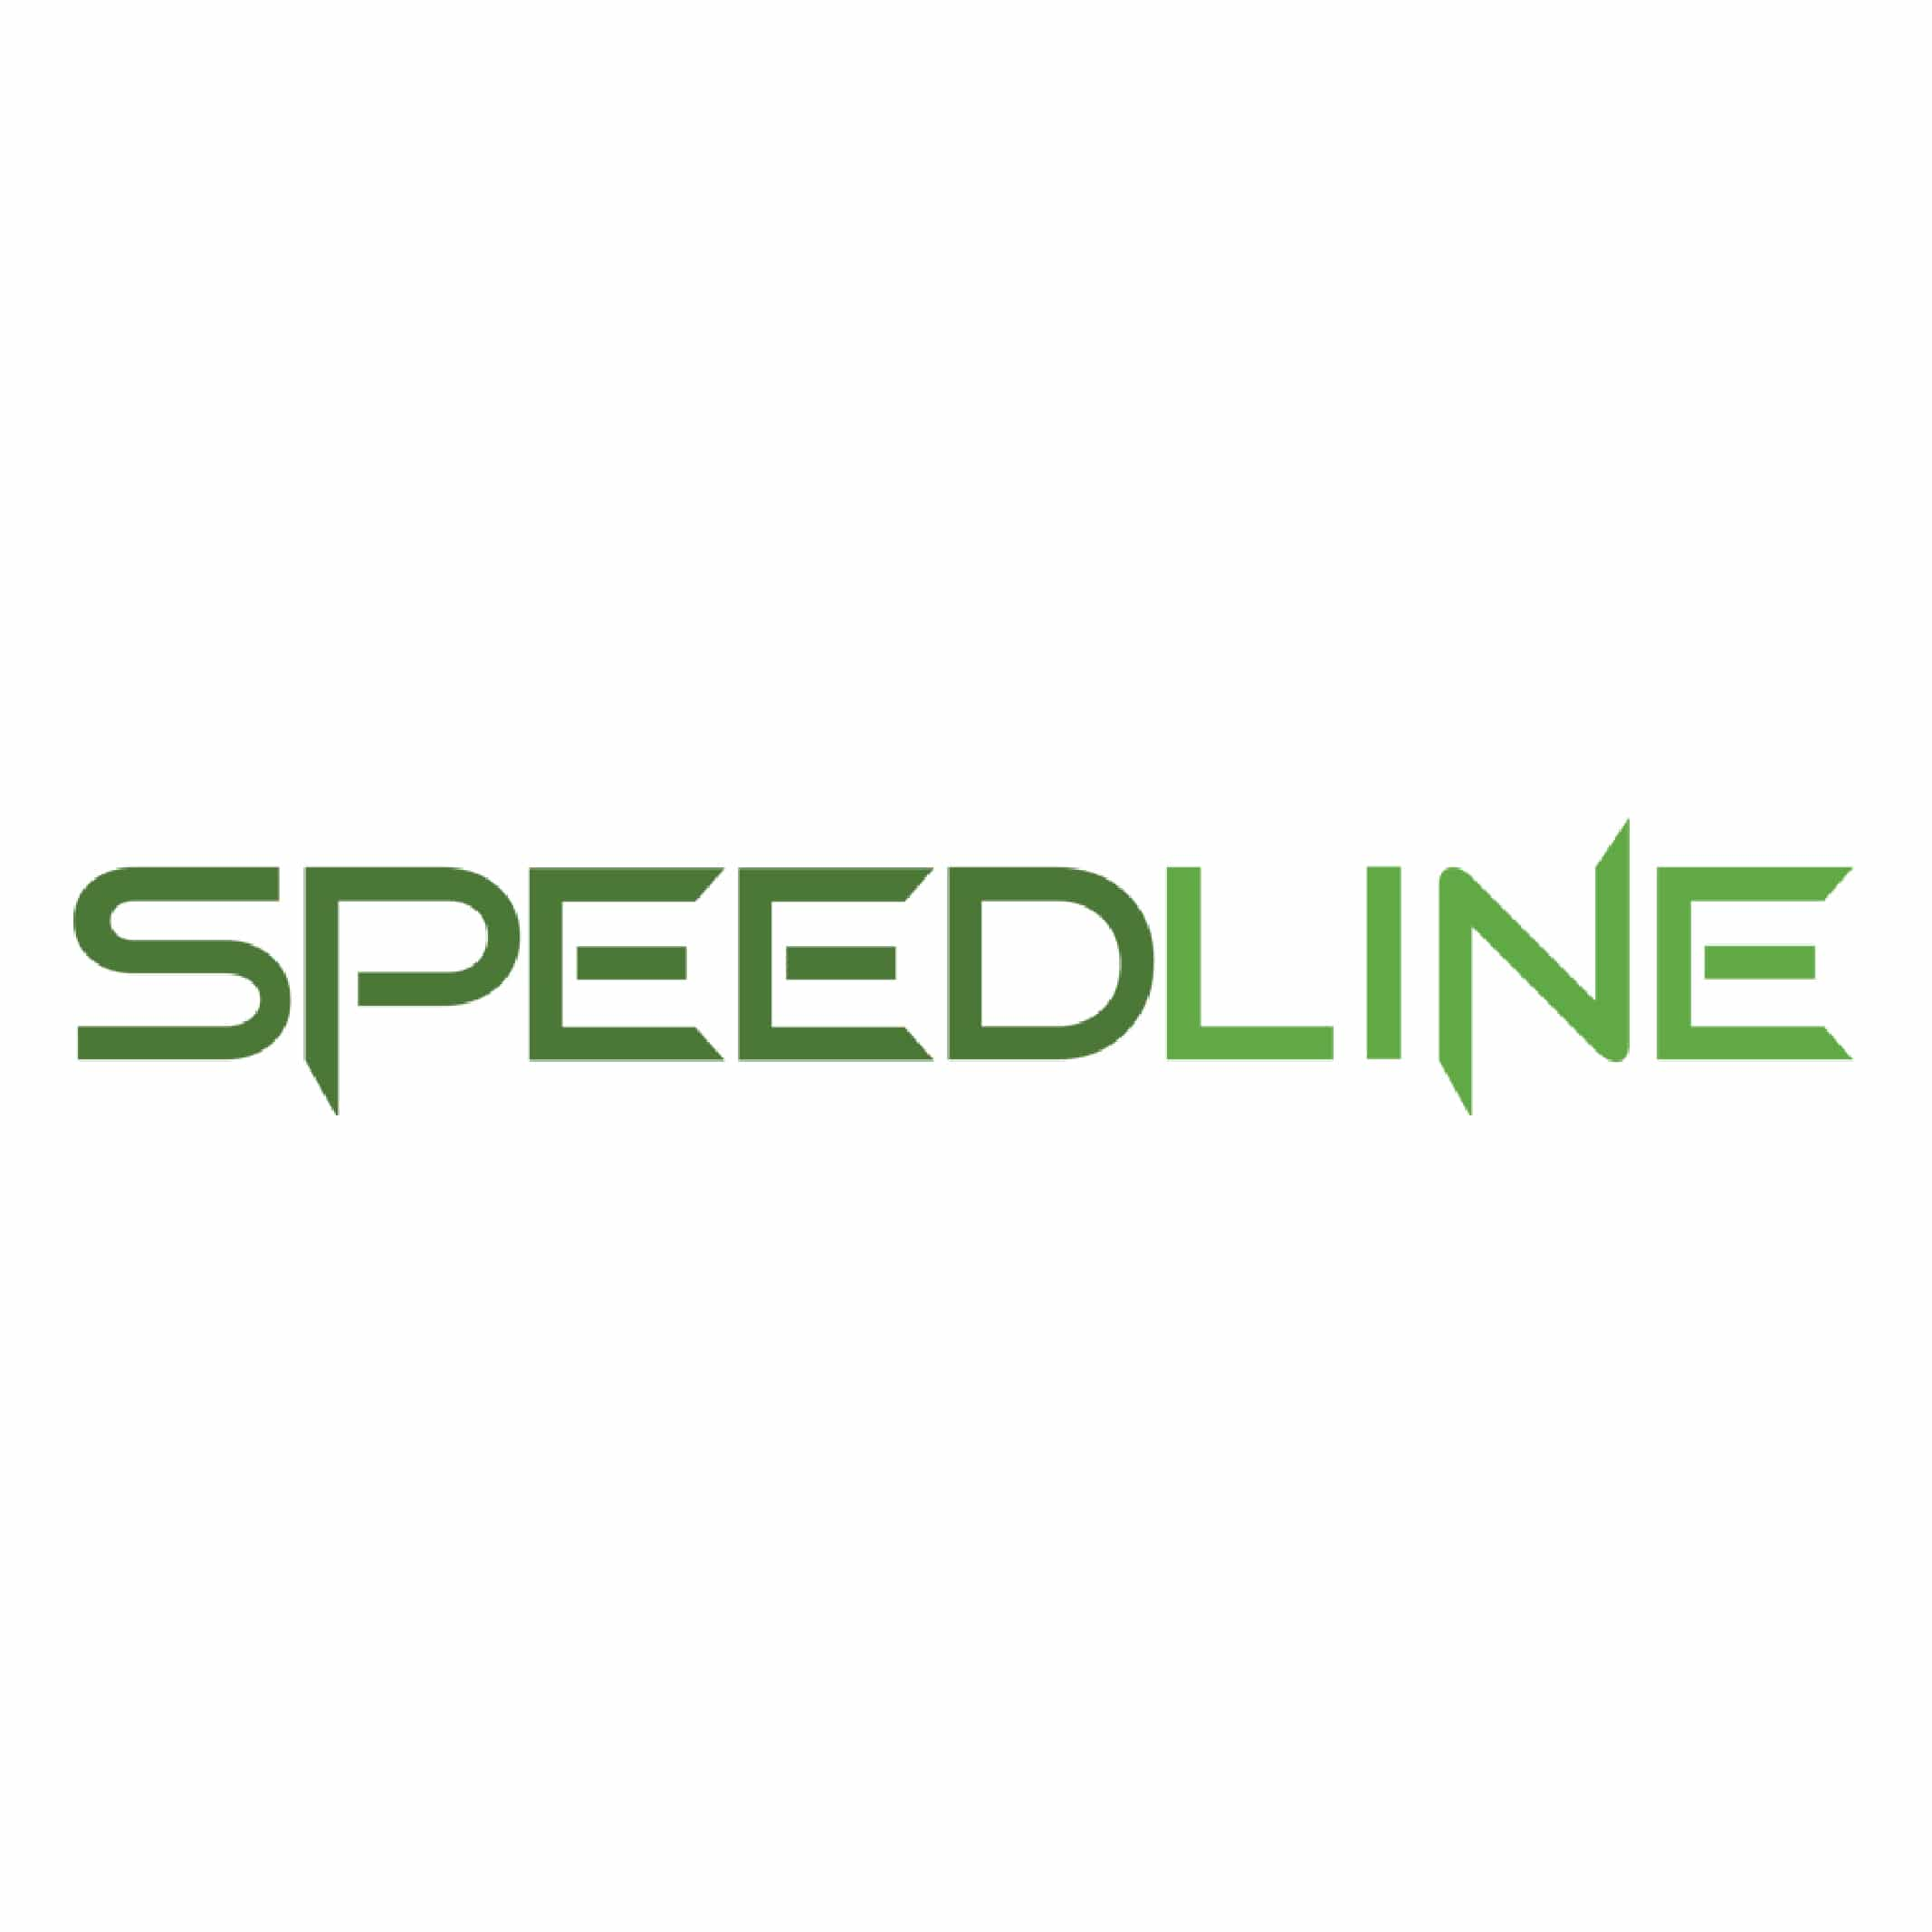 Speedline Corporation